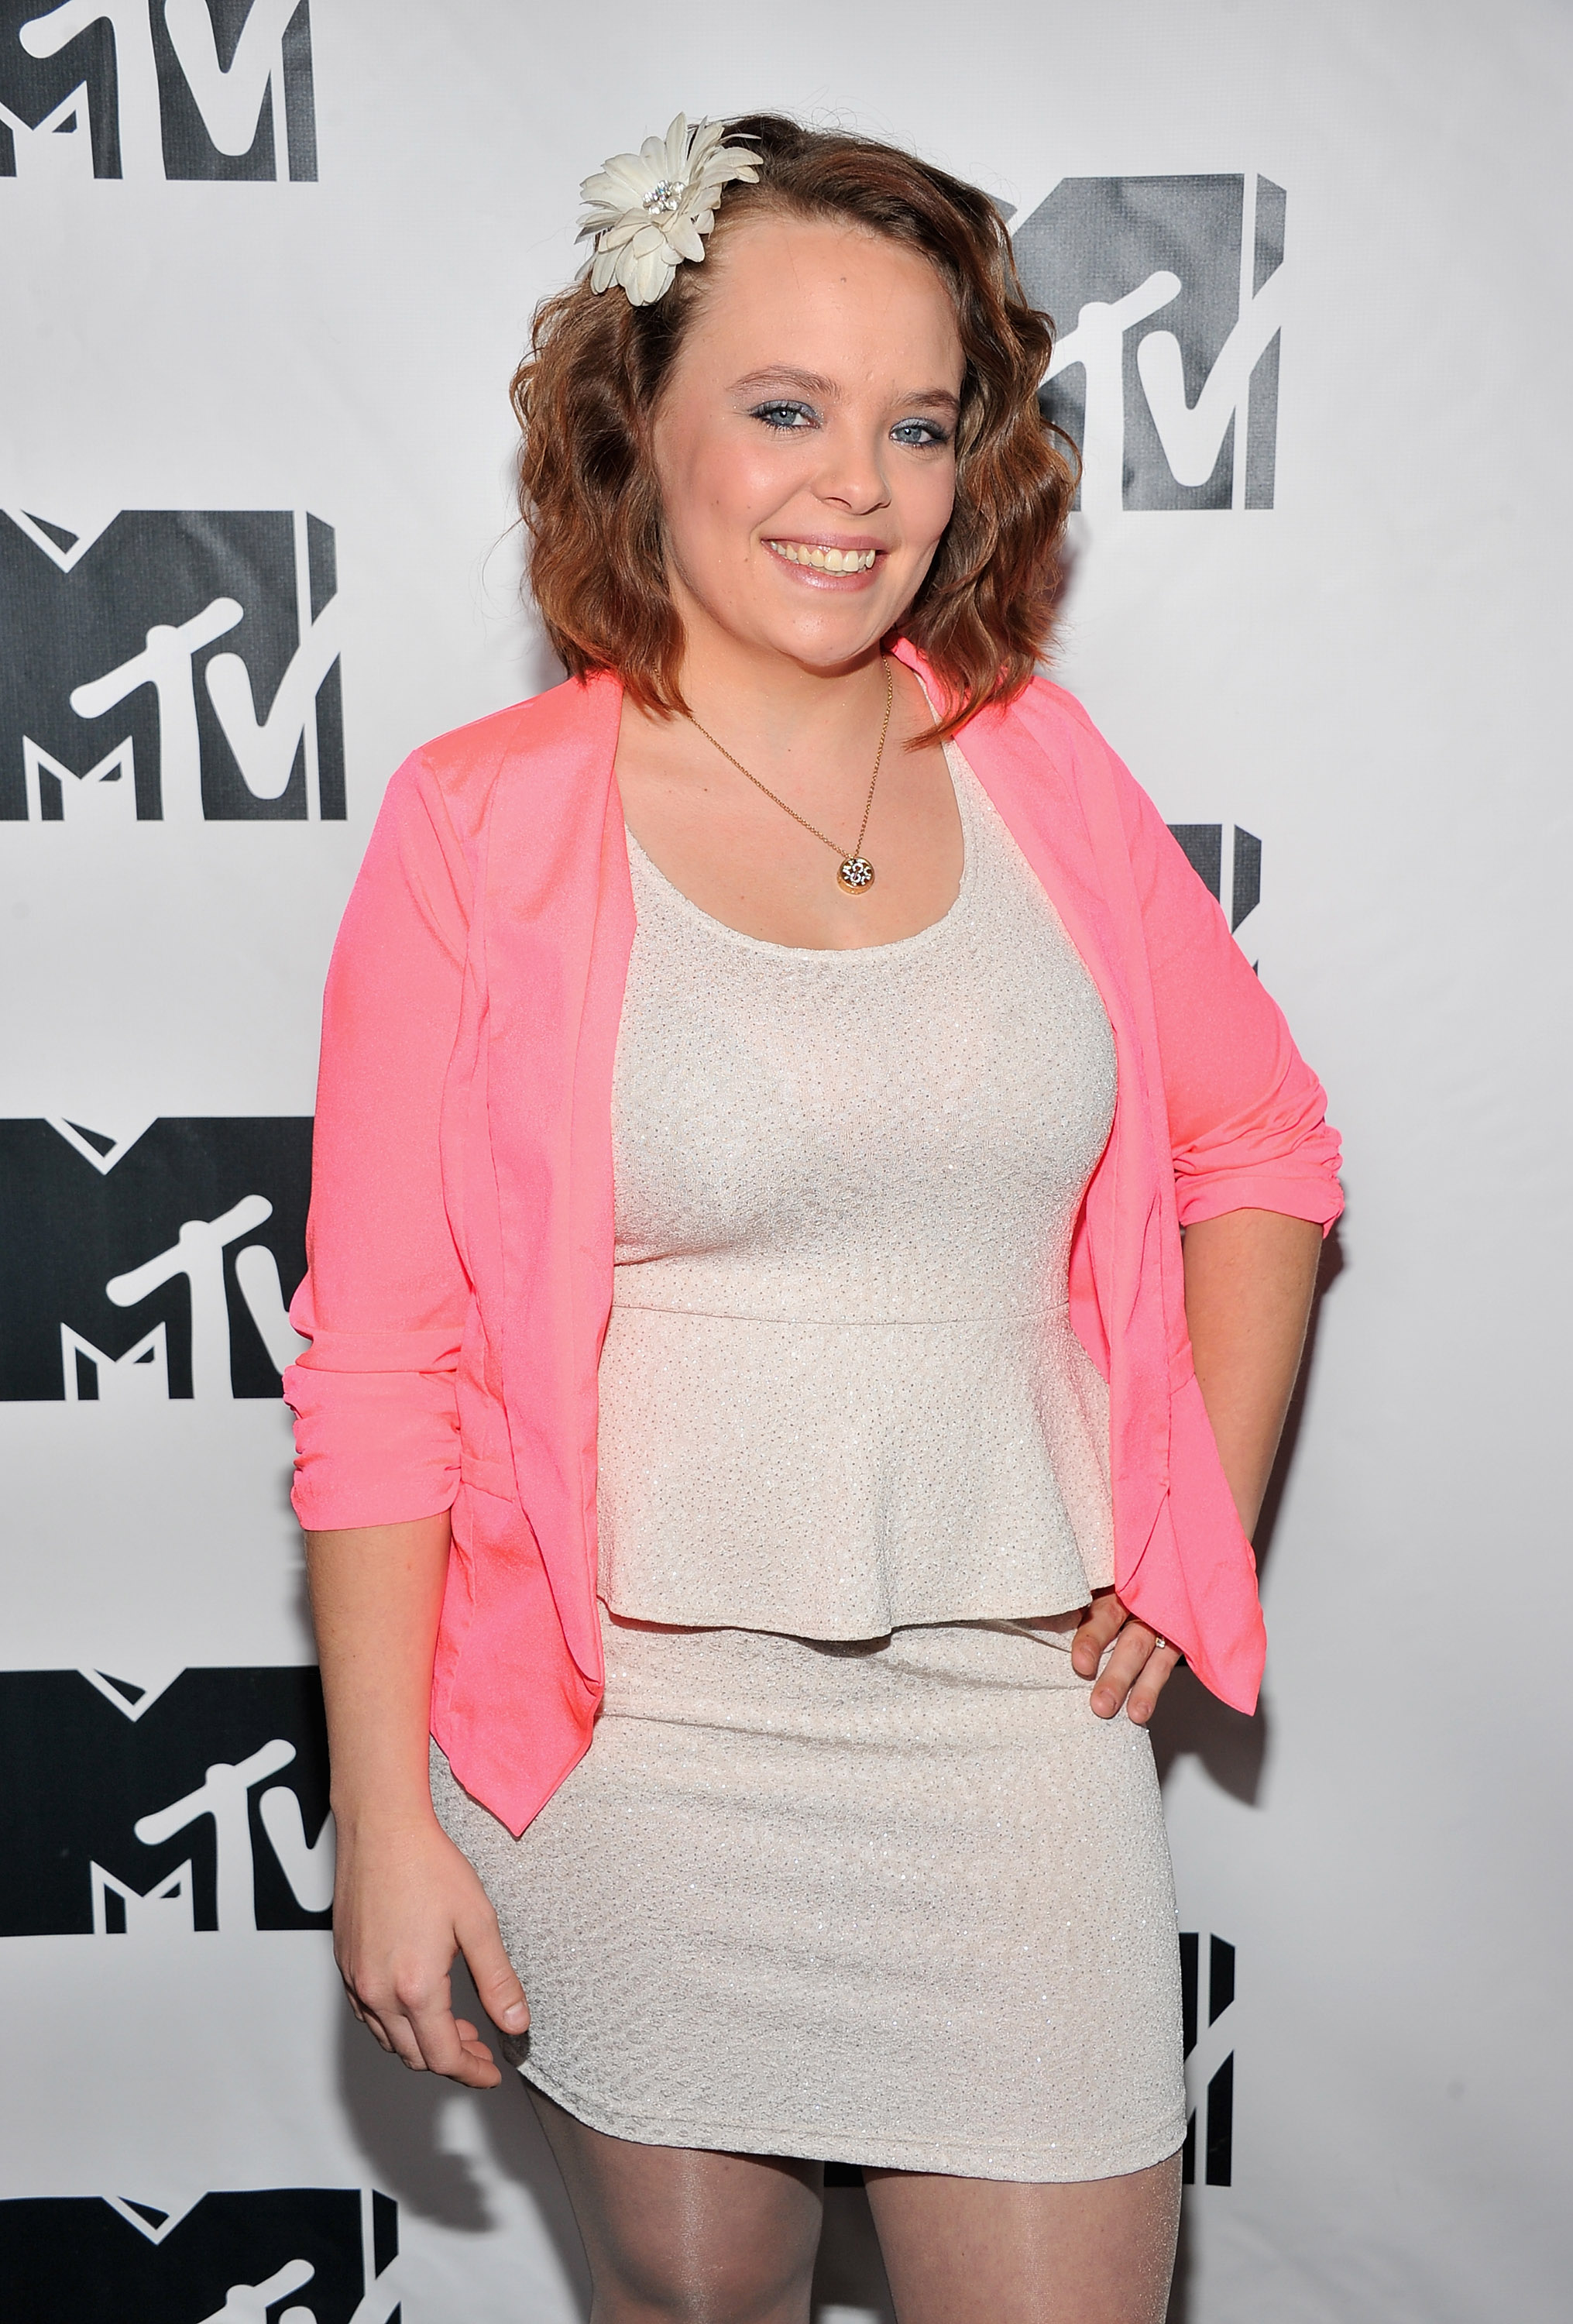 'Teen Mom OG' Star Catelynn Lowell Hopeful Waist Training ...